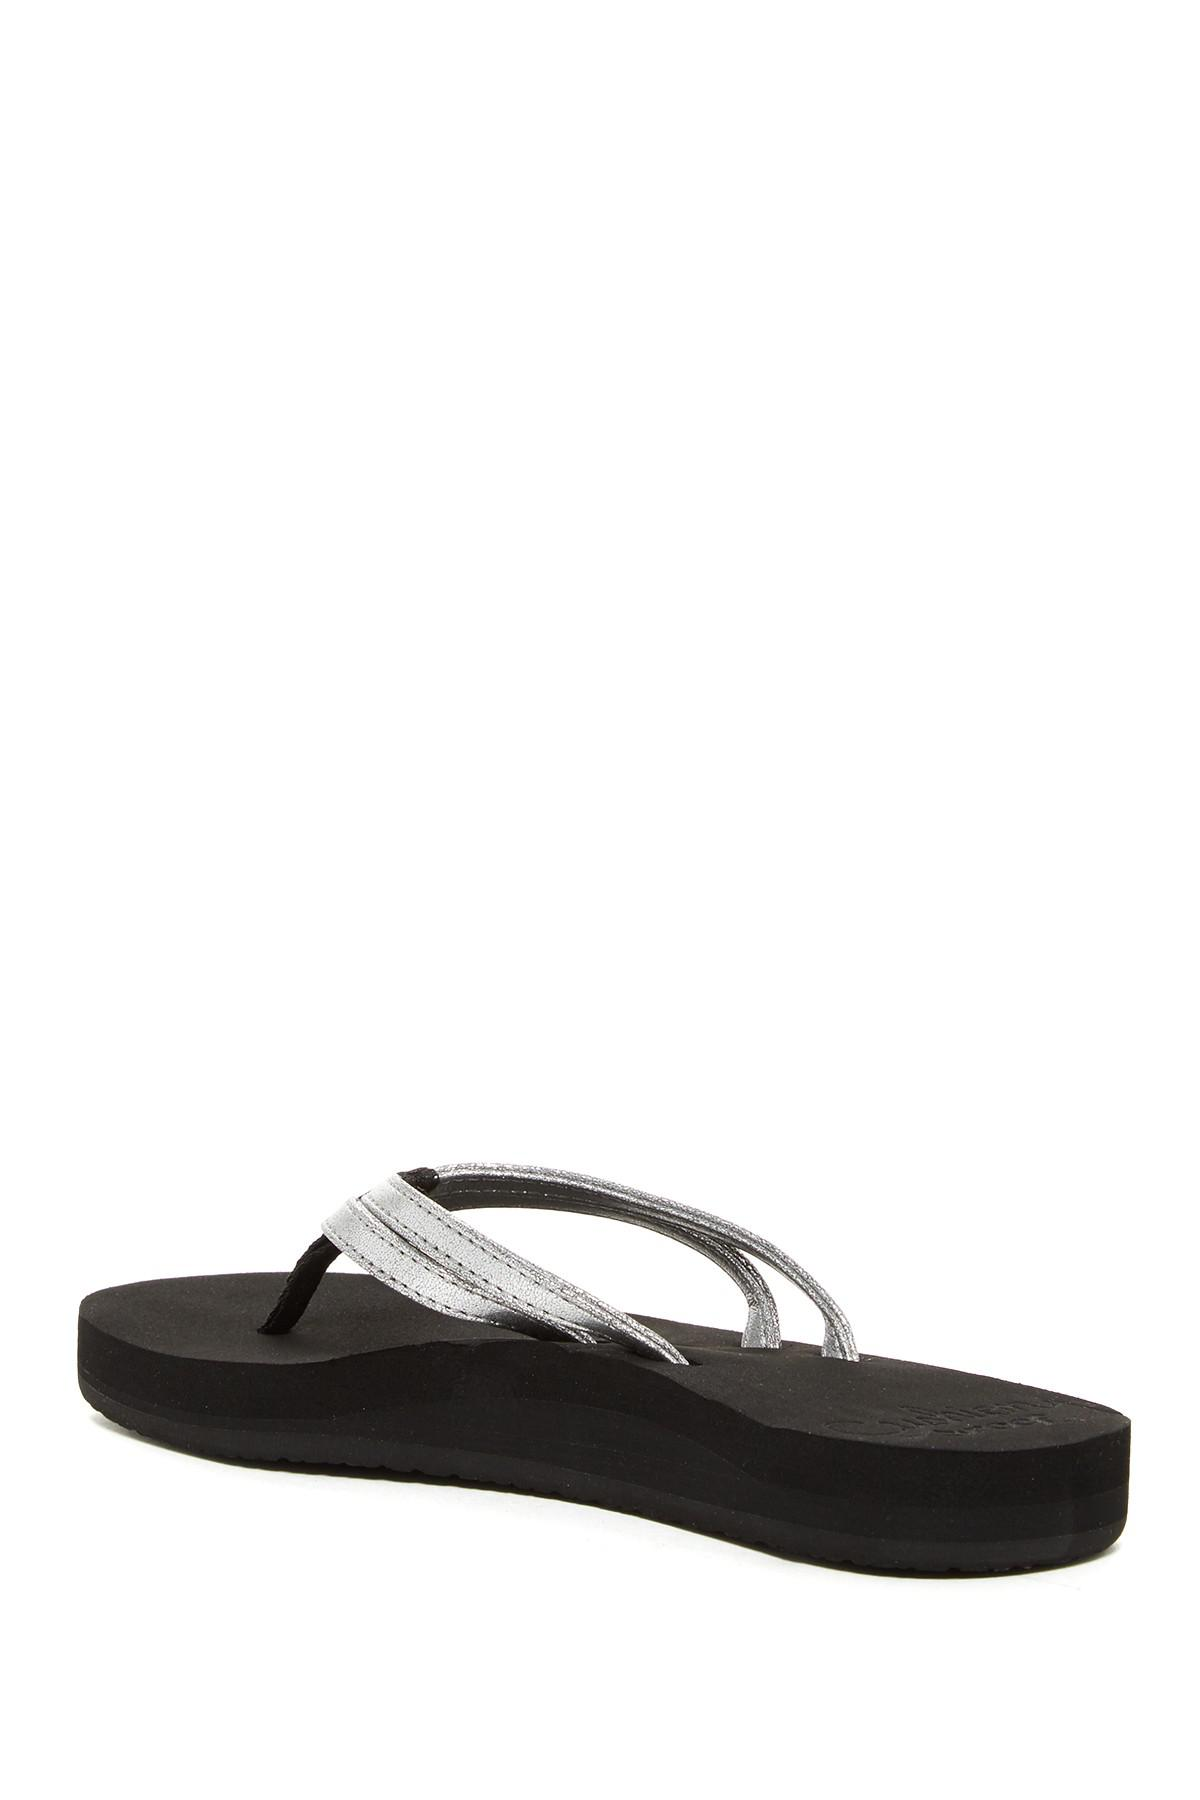 cdedd6c930 Reef Cushion Twin Platform Flip-flop (women) in Black - Lyst